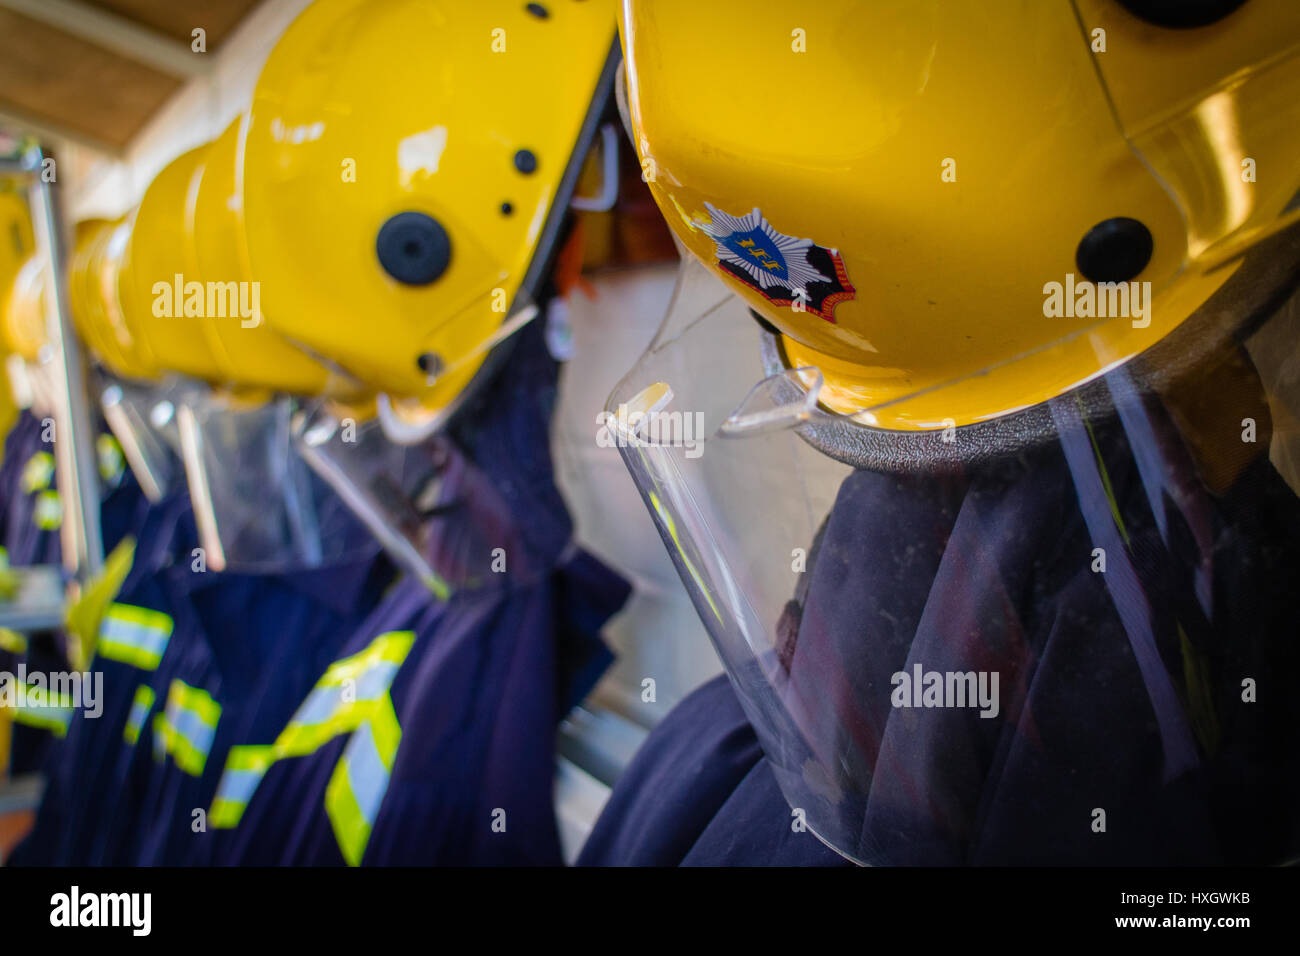 Royal Berkshire Fire and Rescue firefighter uniforms and helmets. - Stock Image